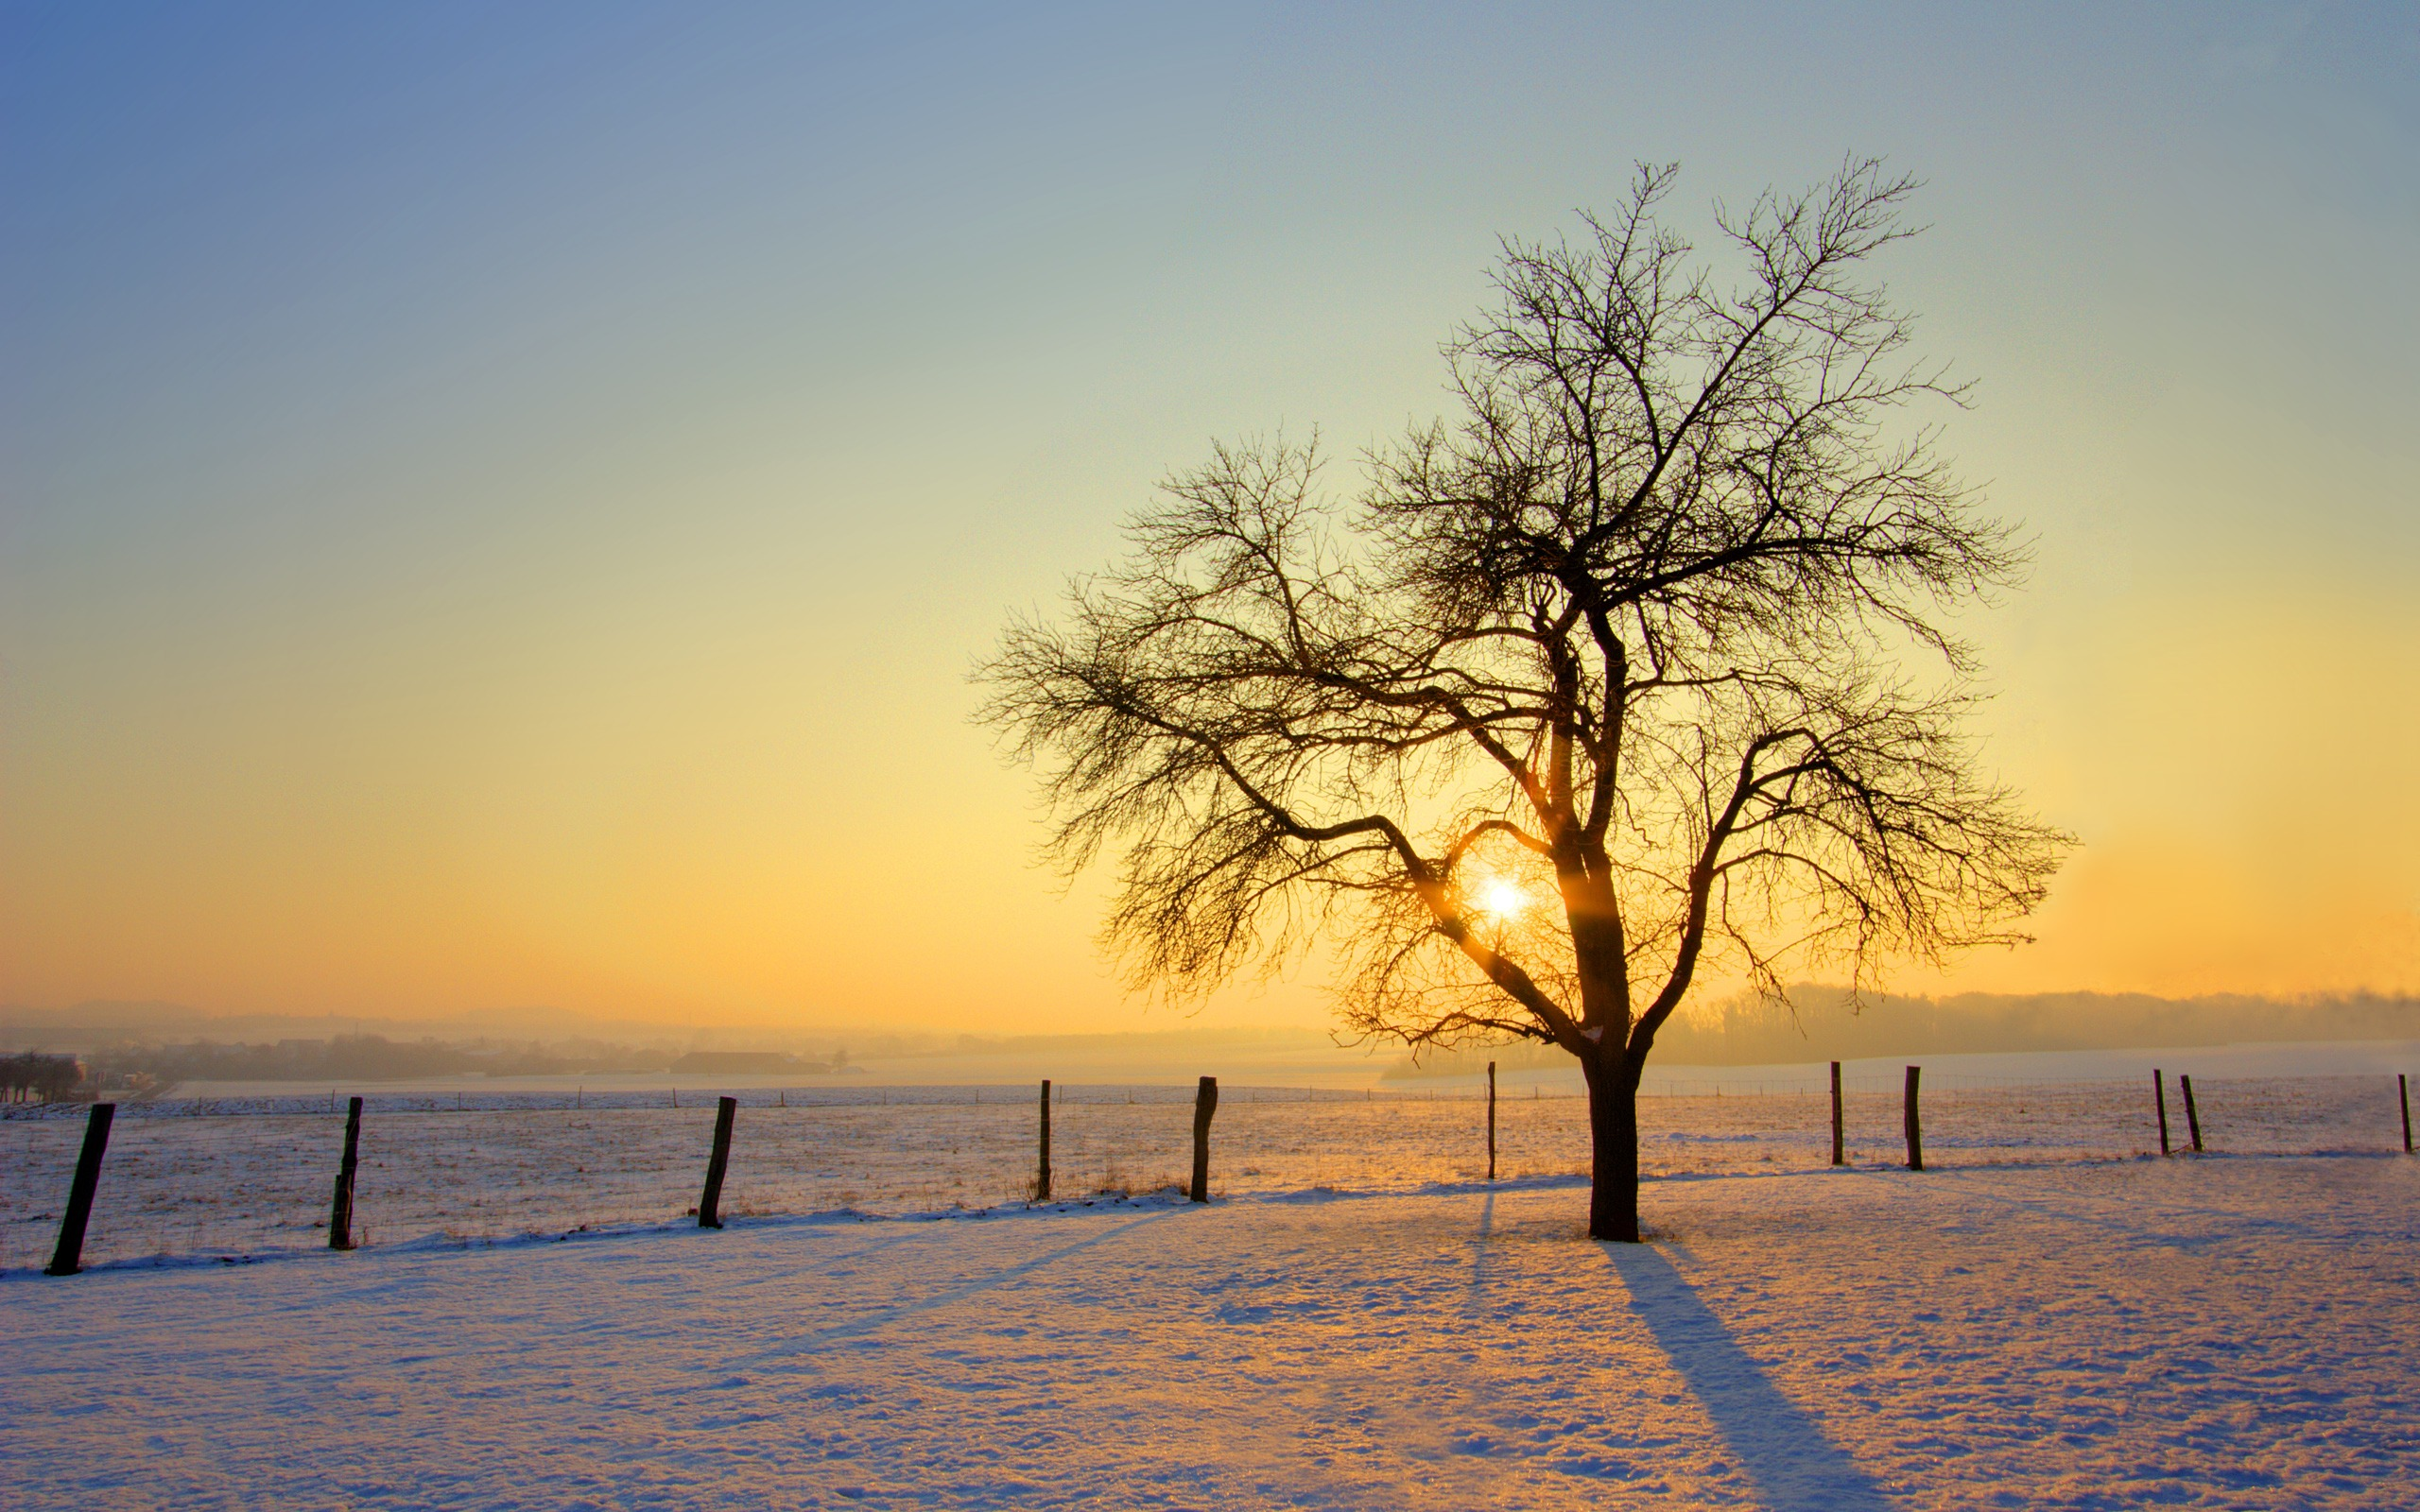 cold morning wallpaper winter nature wallpapers in jpg format for